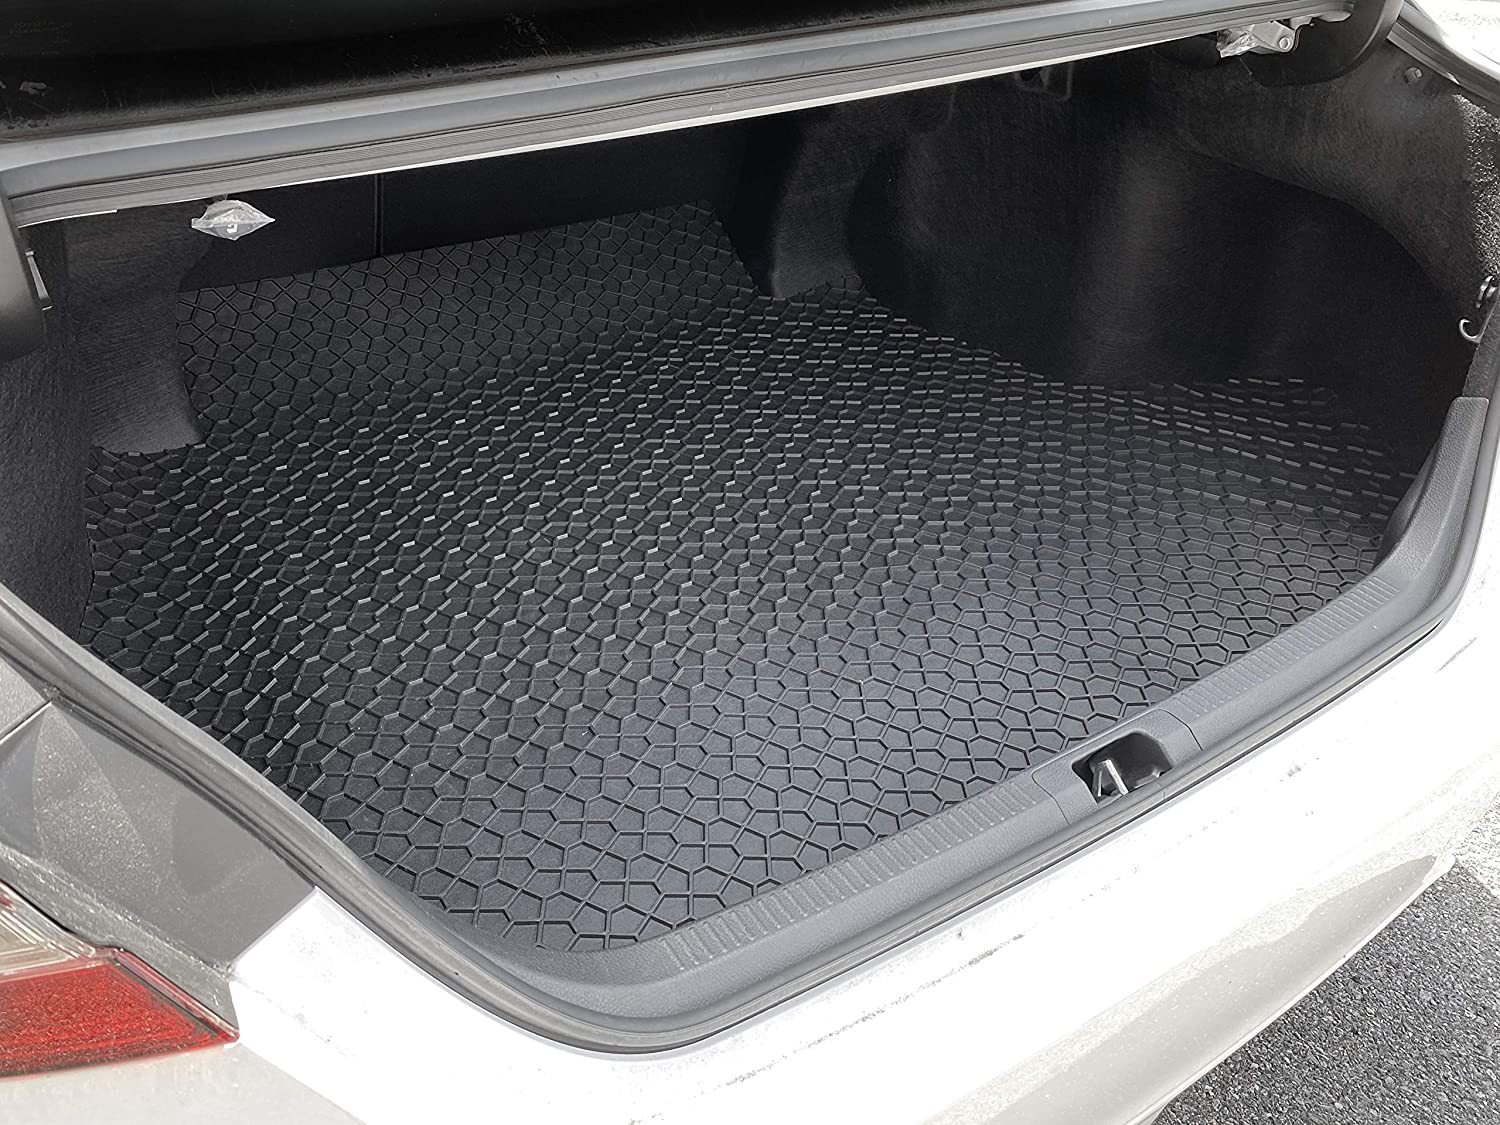 All Weather Anti-Slip Liner Black Rubber YelloPro Auto Custom fit Heavy Duty Car Floor Mat Accessories for 2018 2019 2020 Toyota Camry - Front /& 2nd Row Mats Made in USA 4pcs